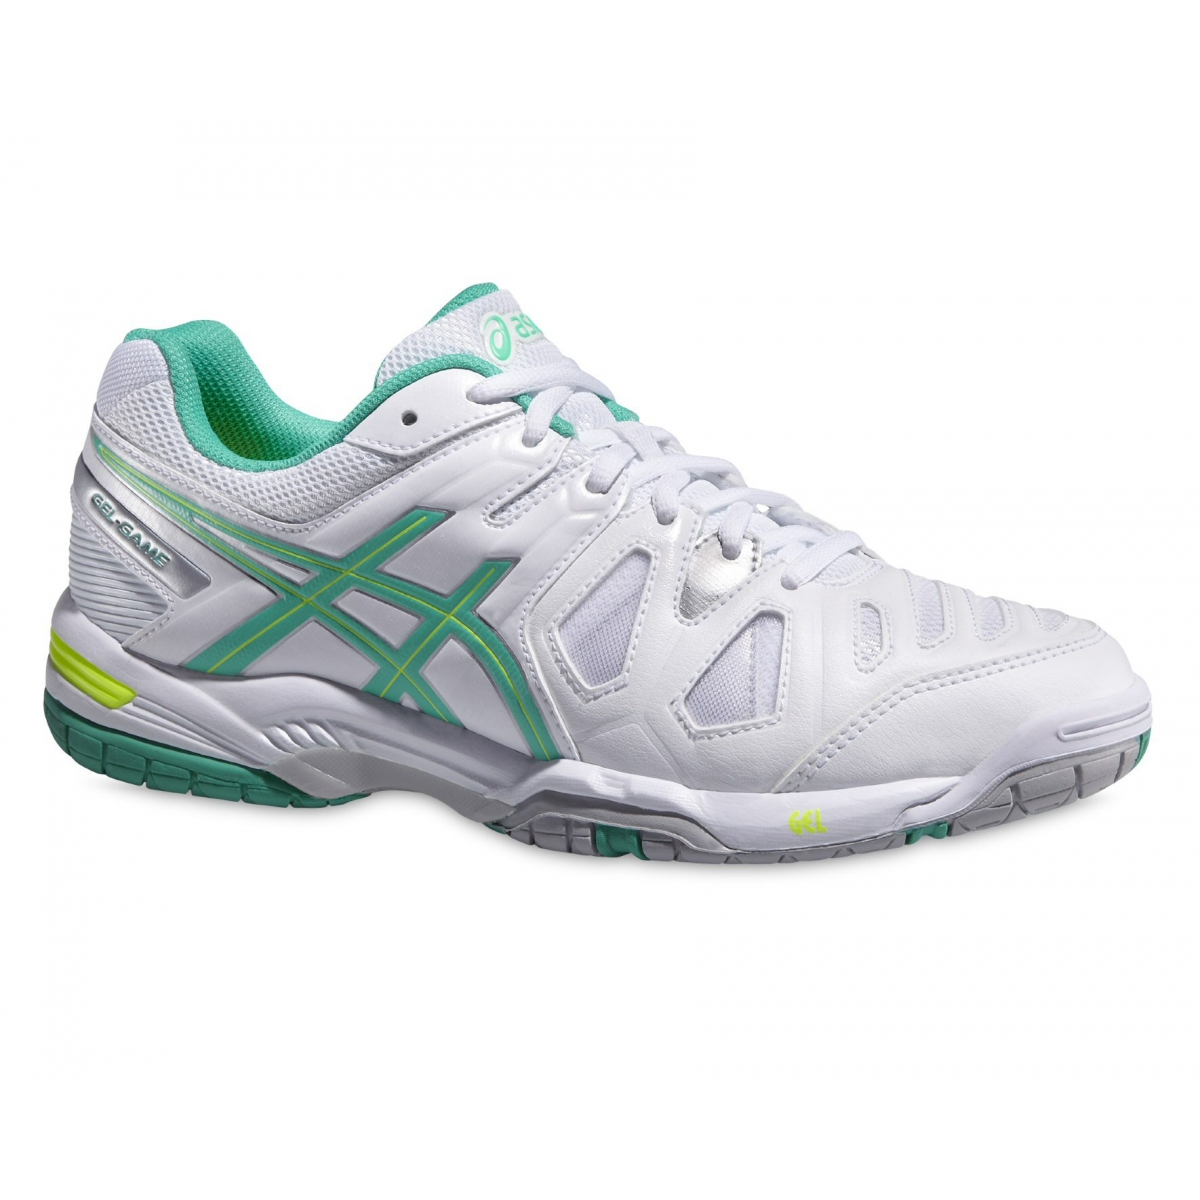 asics gel game 5 weiss mint tennisschuhe damen versandkostenfrei online bestellen. Black Bedroom Furniture Sets. Home Design Ideas